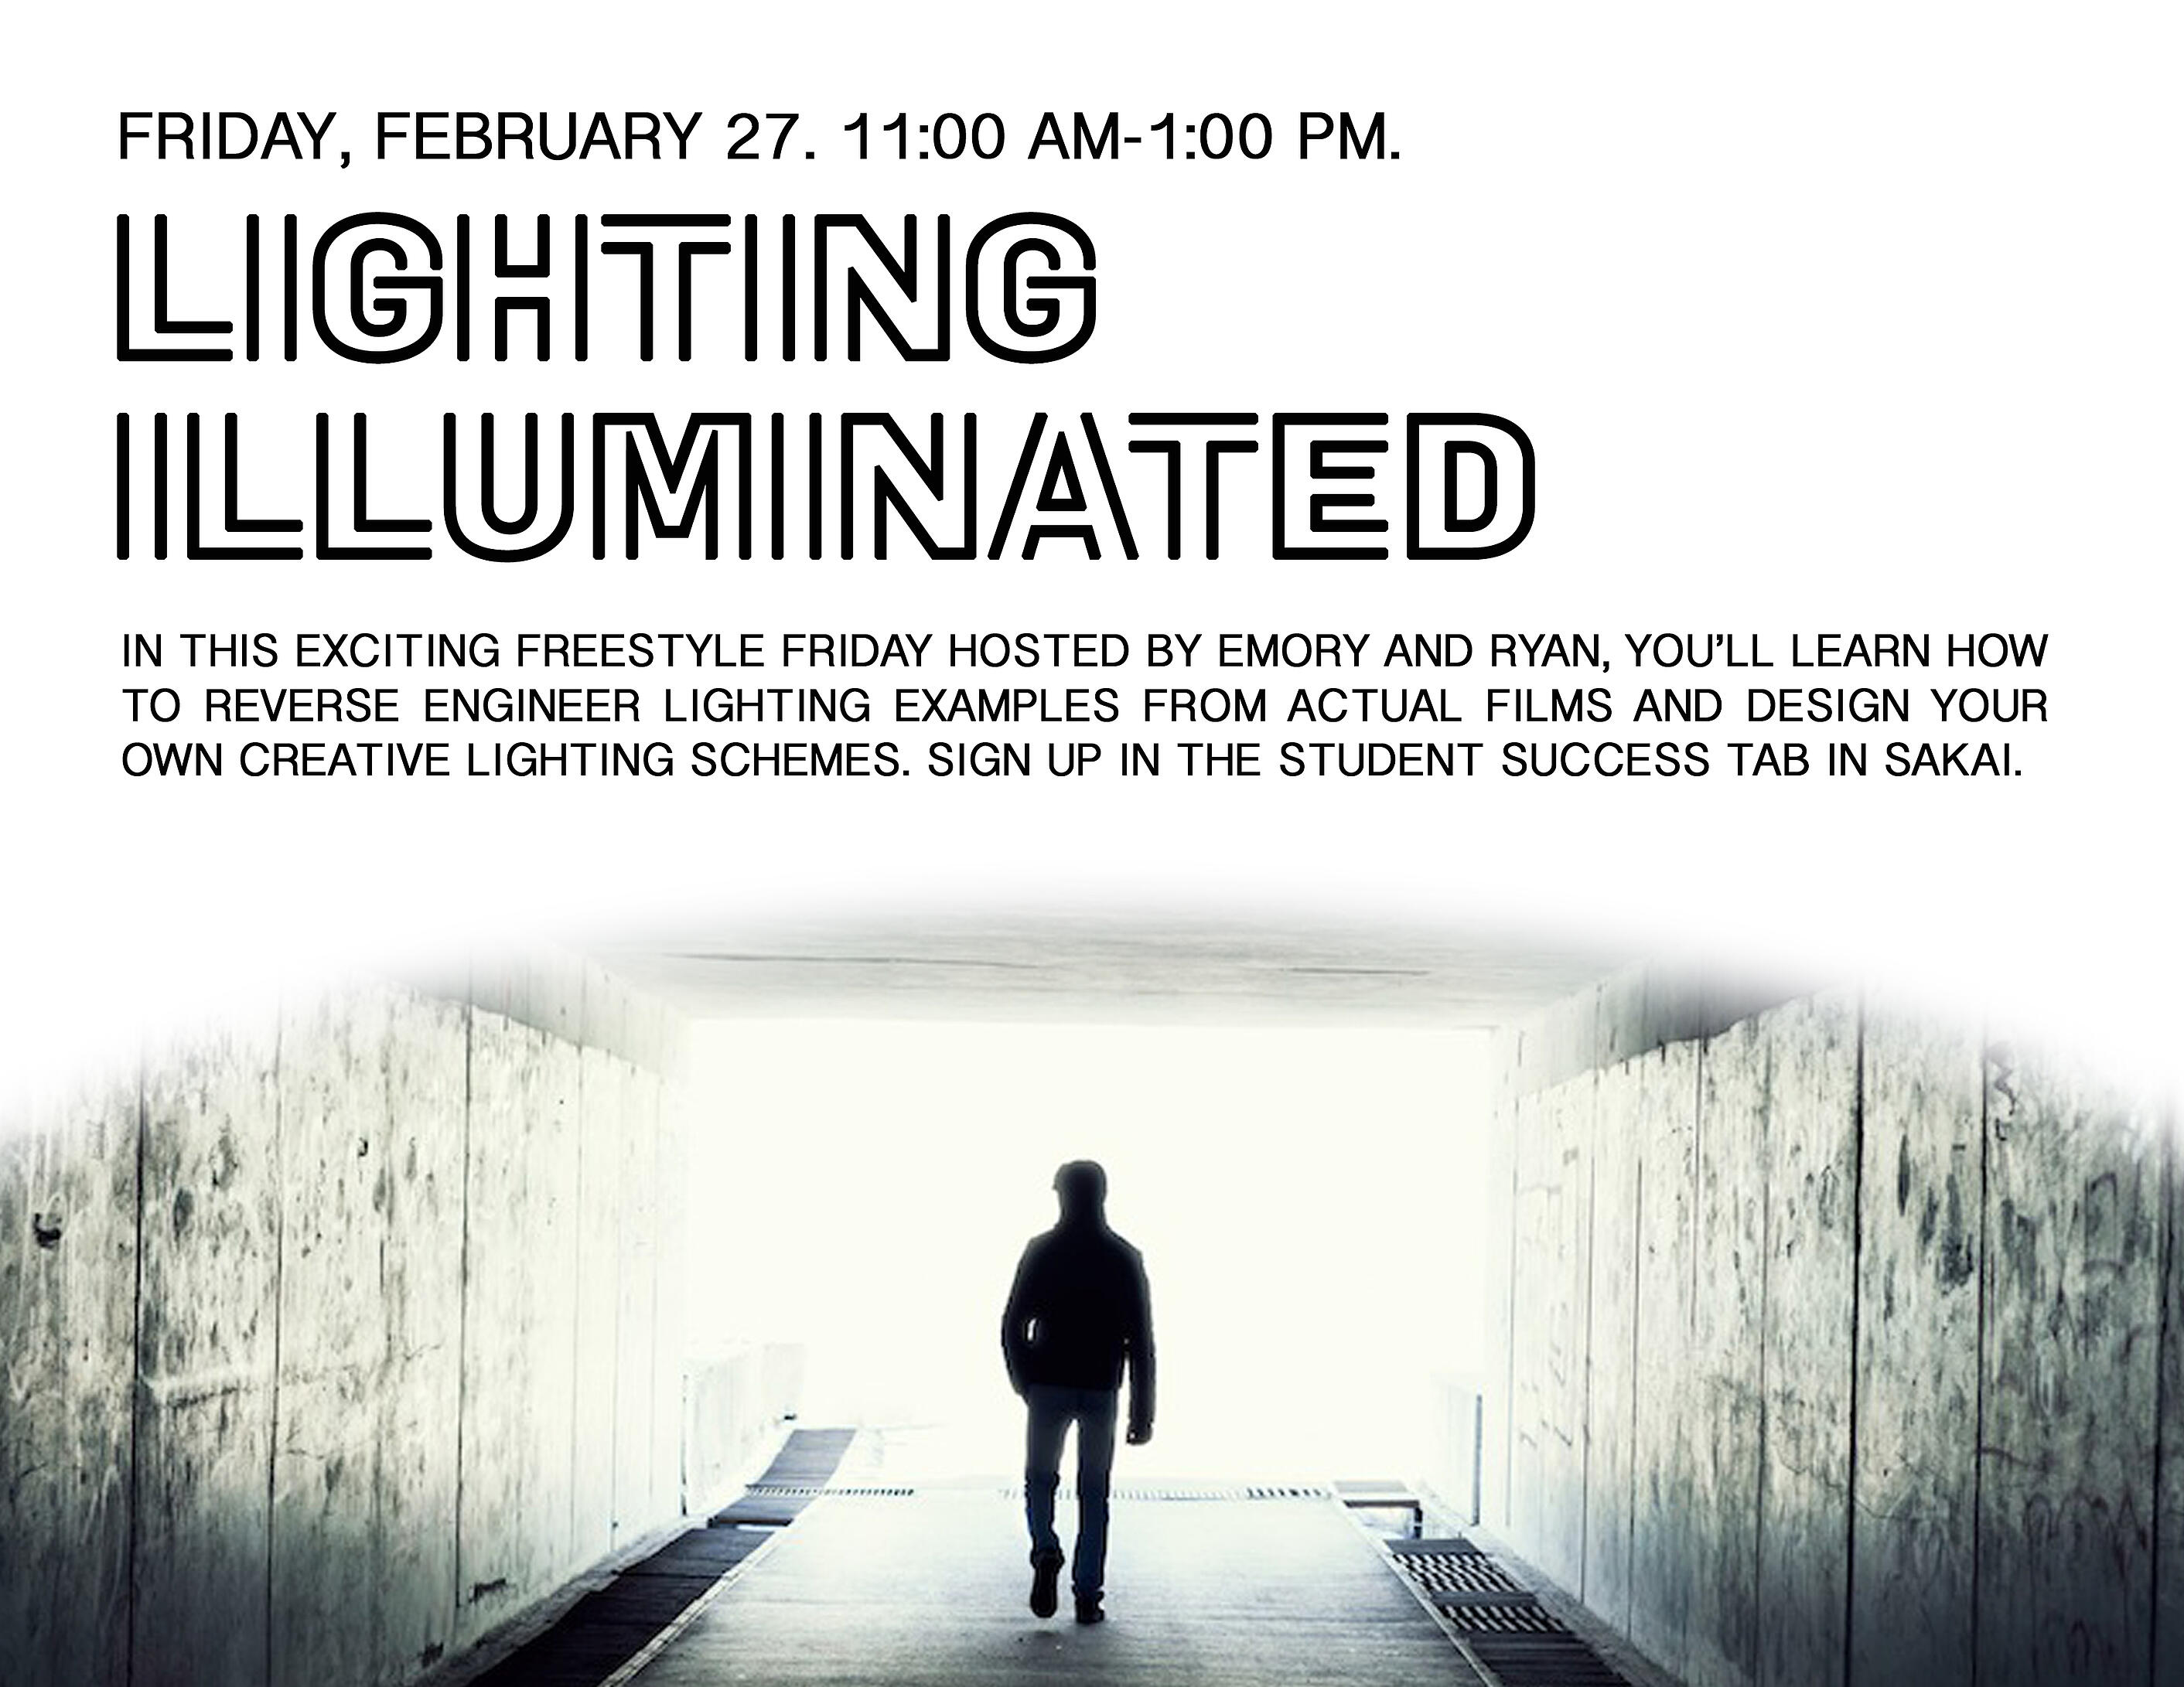 Lighting_Illuminated_Flyer